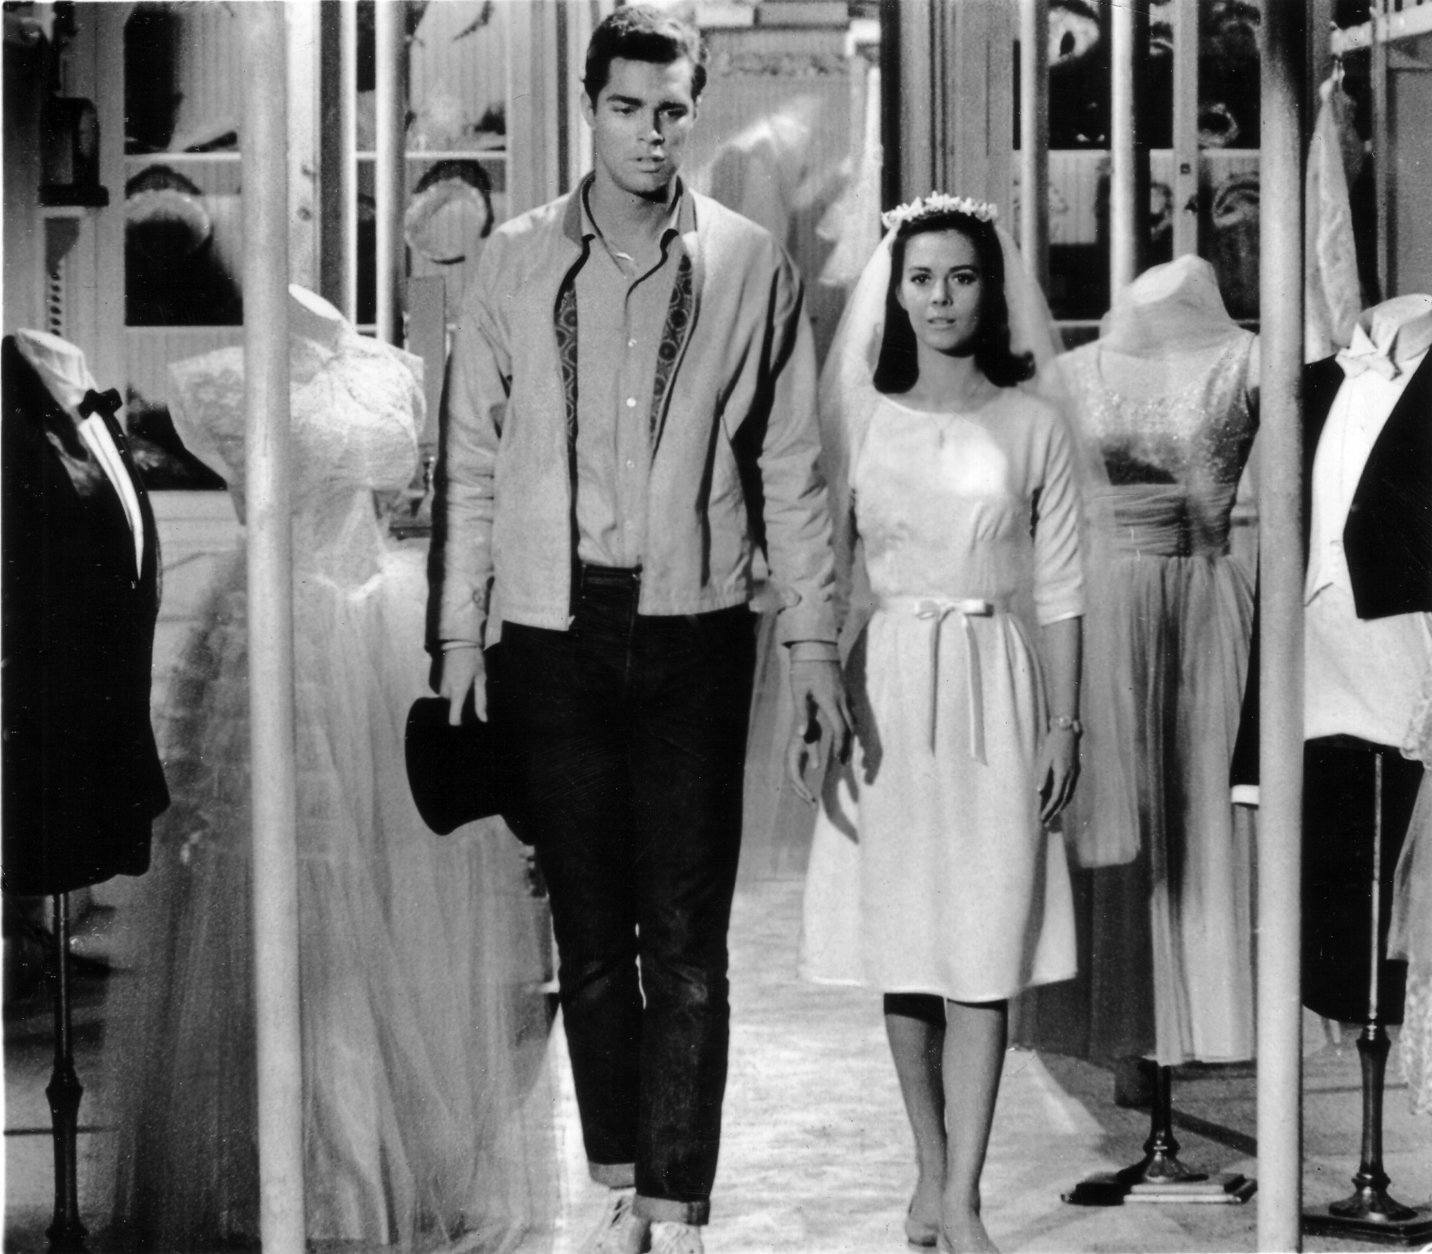 """Richard Beymer and Natalie Wood as the star-crossed lovers in the film """"West Side Story"""", Oct. 1961.  (AP Photo)"""